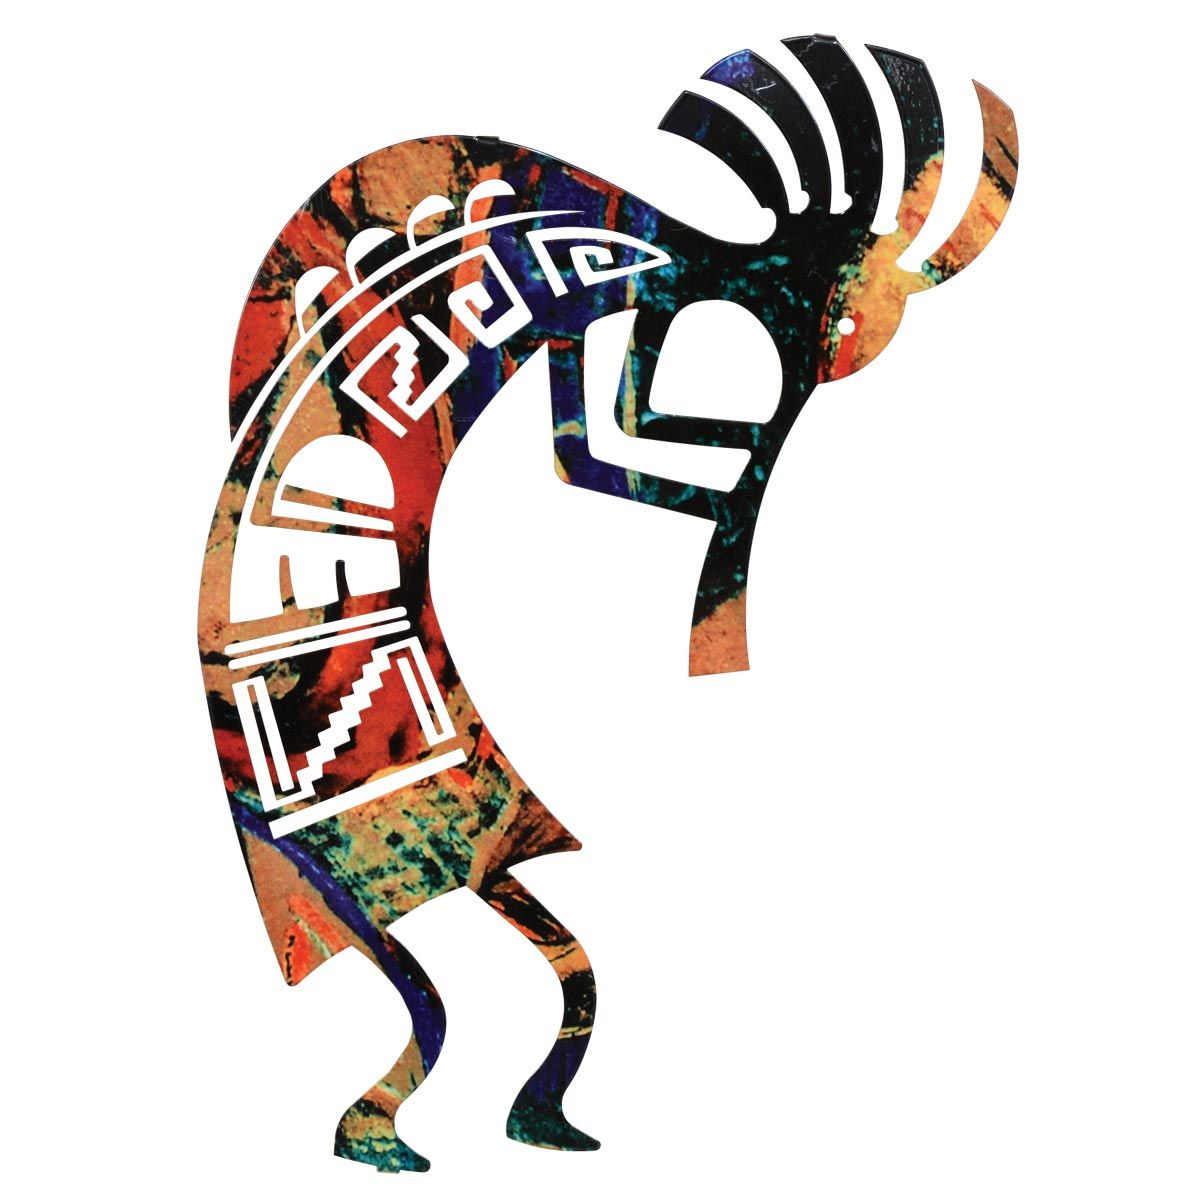 Rustic Metal Wall Art: 12 Inch Kokopelli Dance Metal Wall Art Throughout Favorite Dance Of Desire Wall Decor (View 10 of 20)